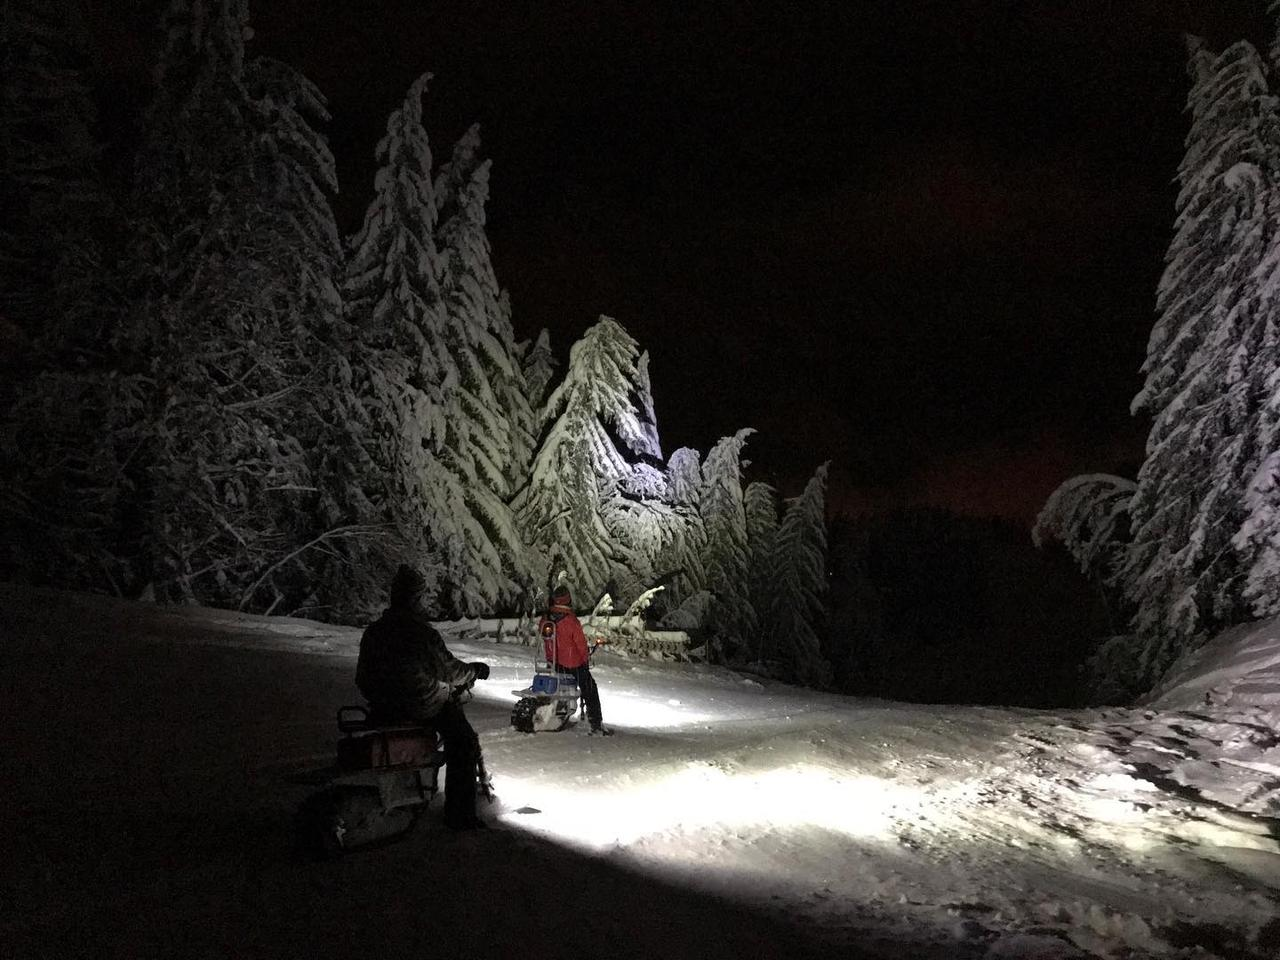 A litle night motor snow biking with the built-in lighting system